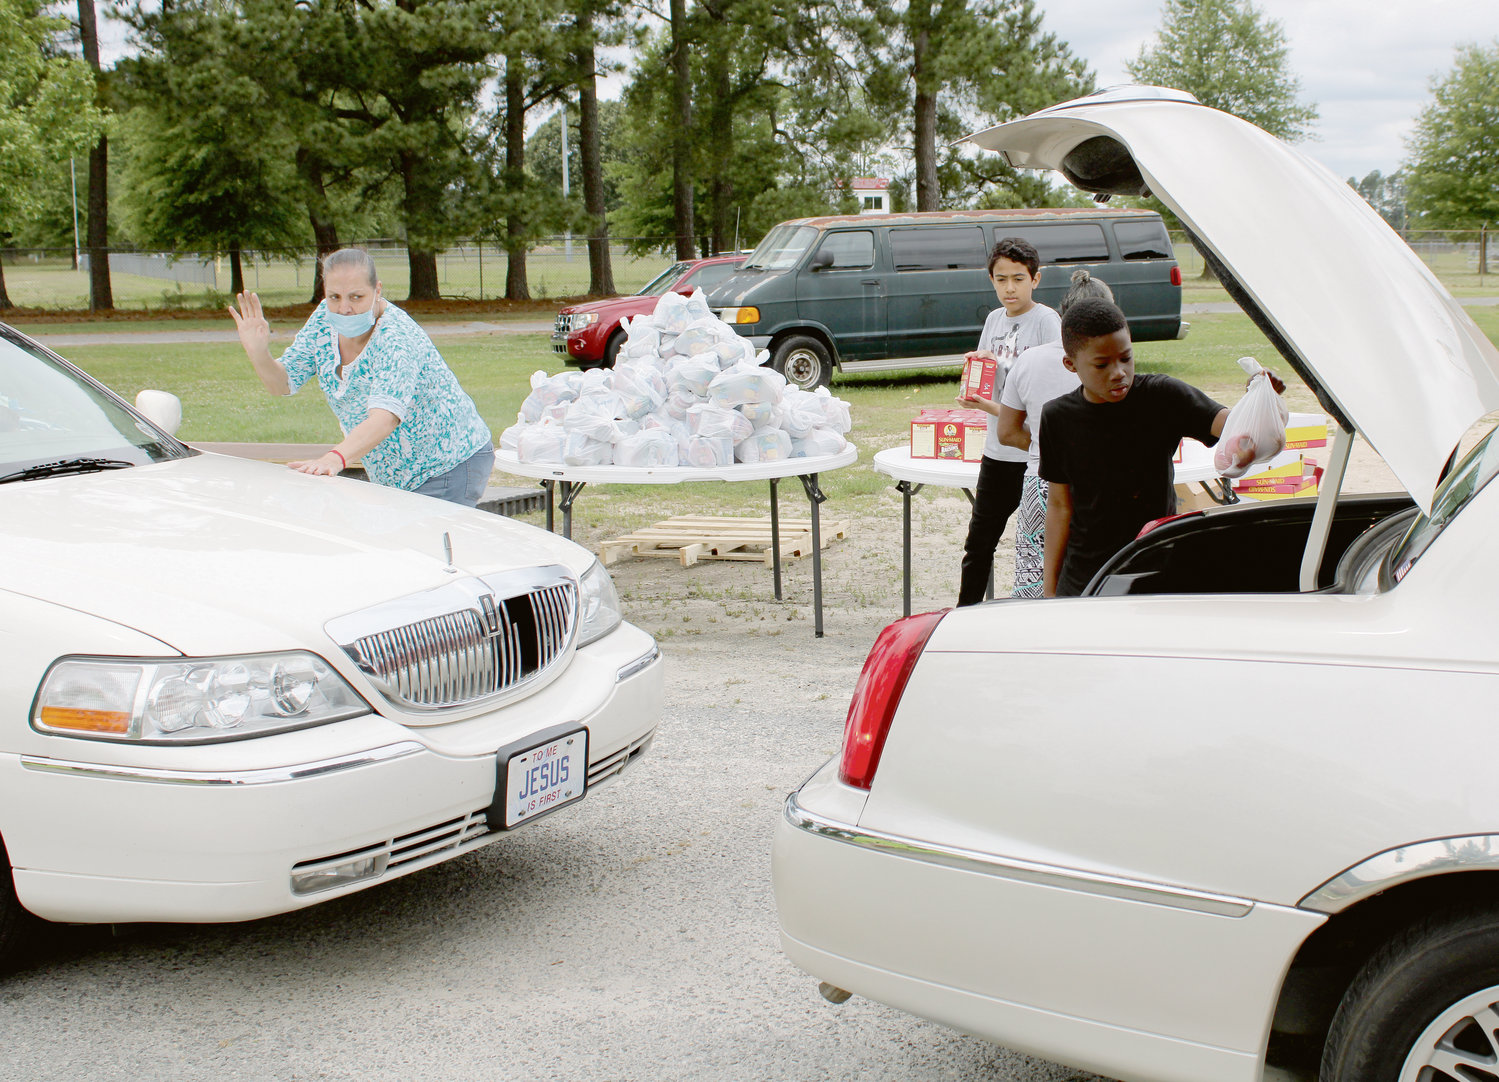 Volunteers place bags of food in the trunks of cars at the Mount Olive Food Bank, which is located at Old Carver School.